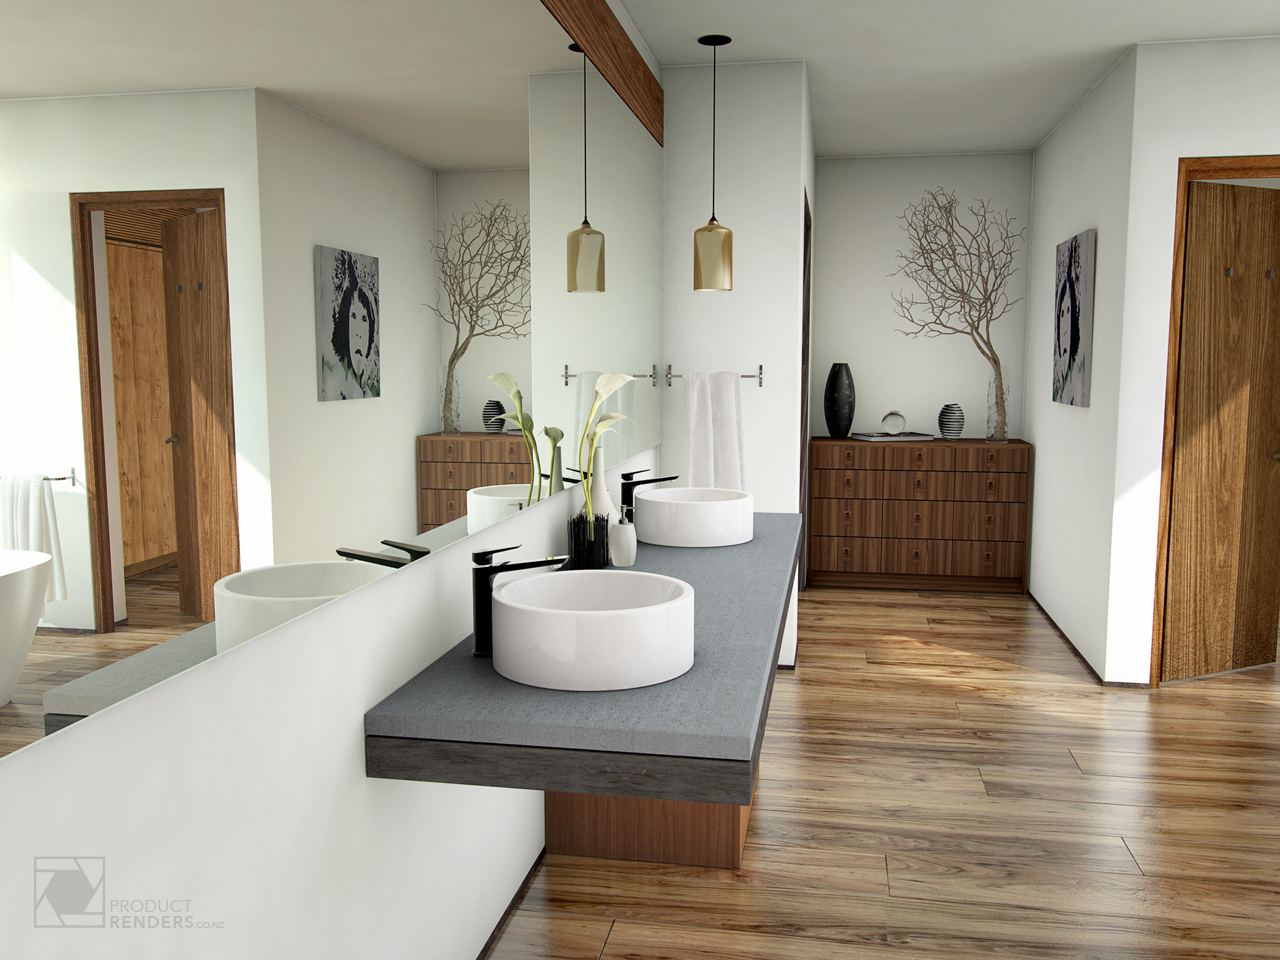 3D render of a bathroom to showcase Foreno tapware